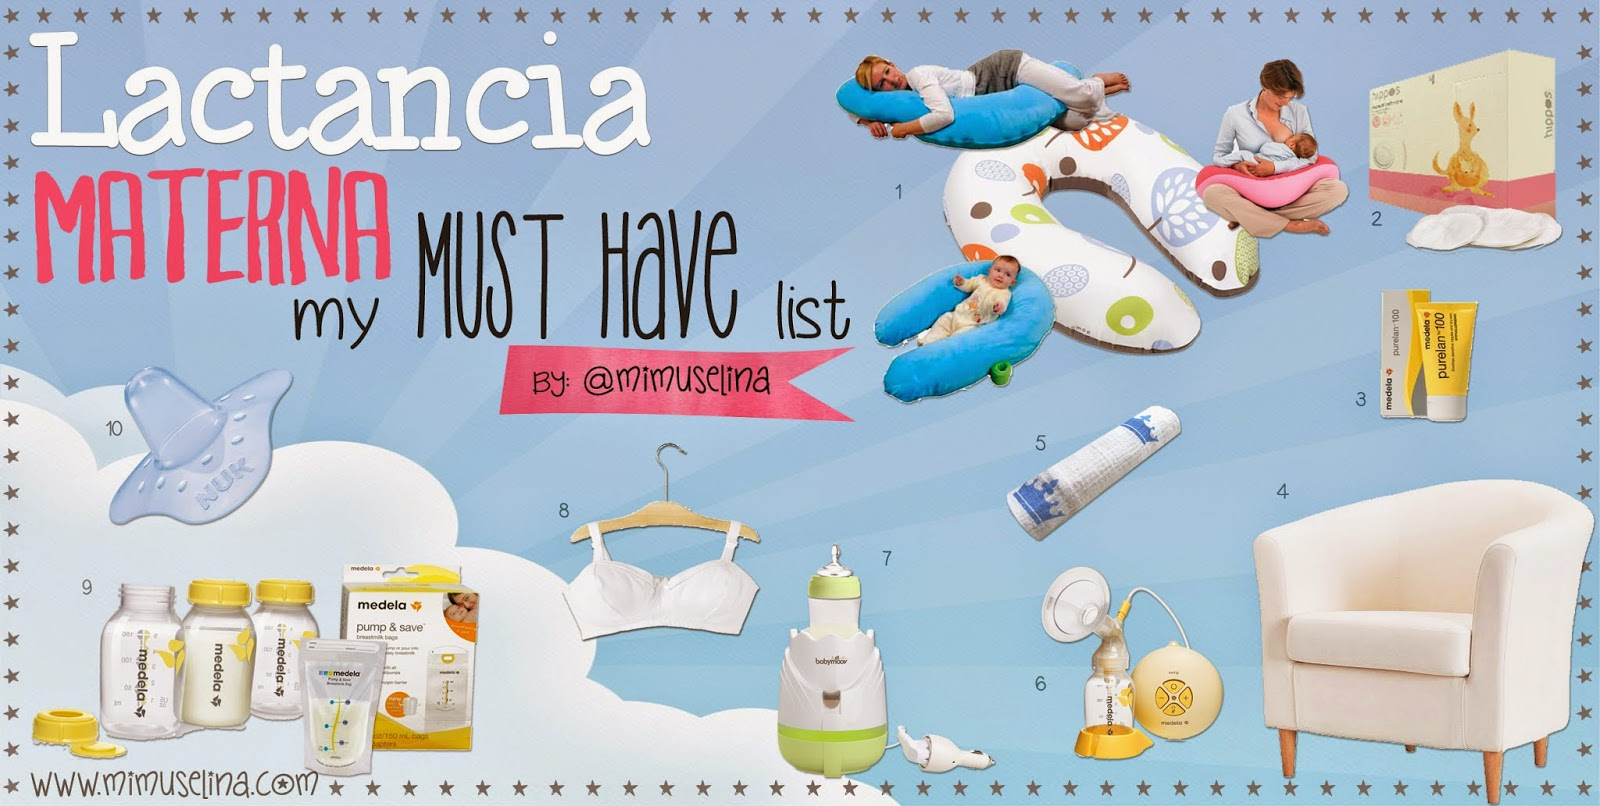 Herramientas Lactancia materna Must Have List imprescindibles